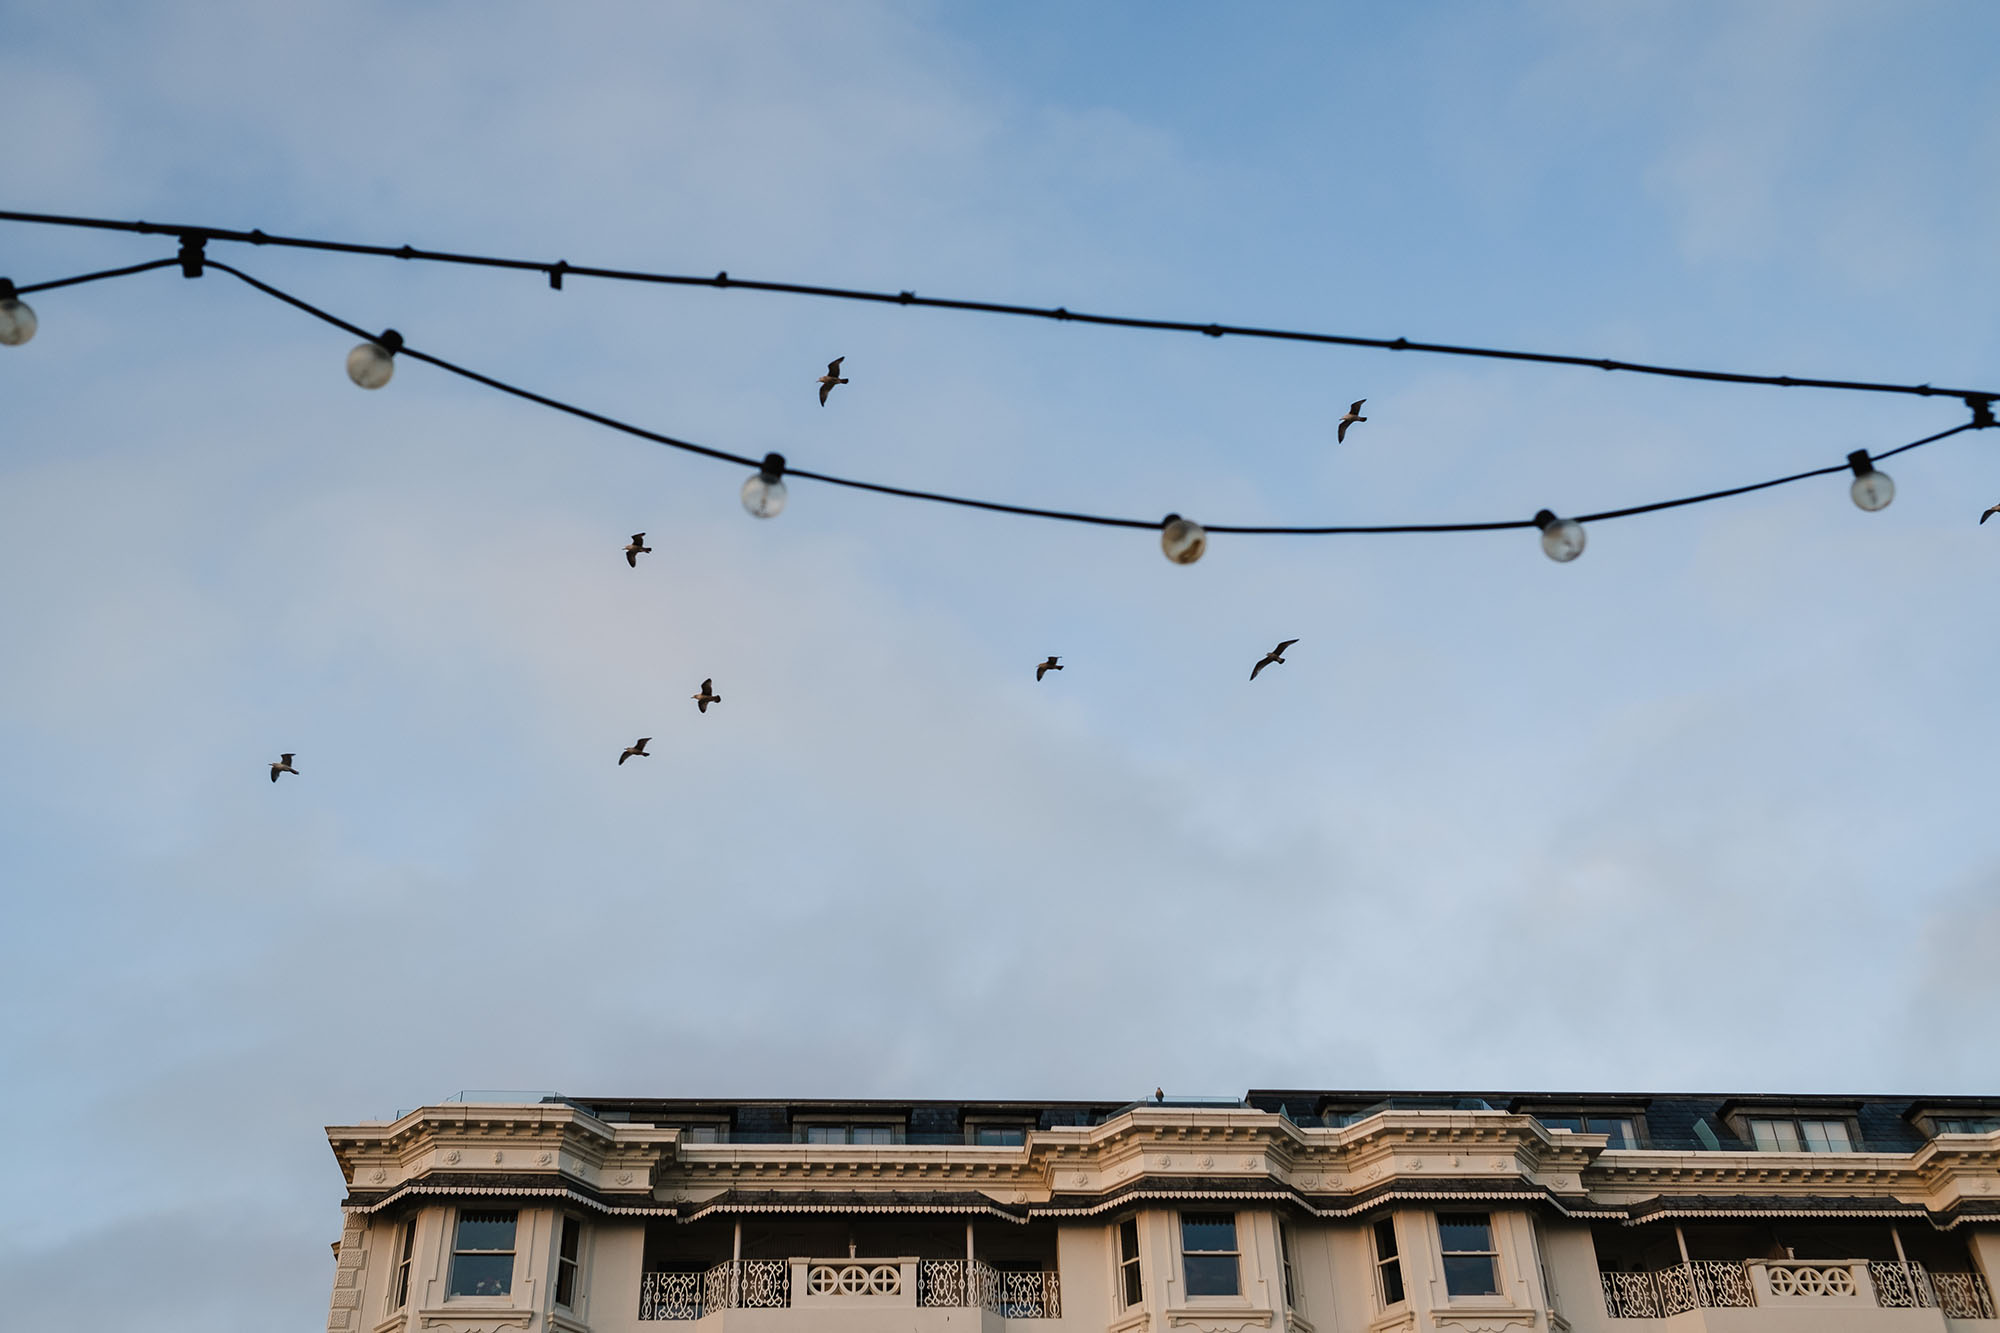 worthing sky with birds